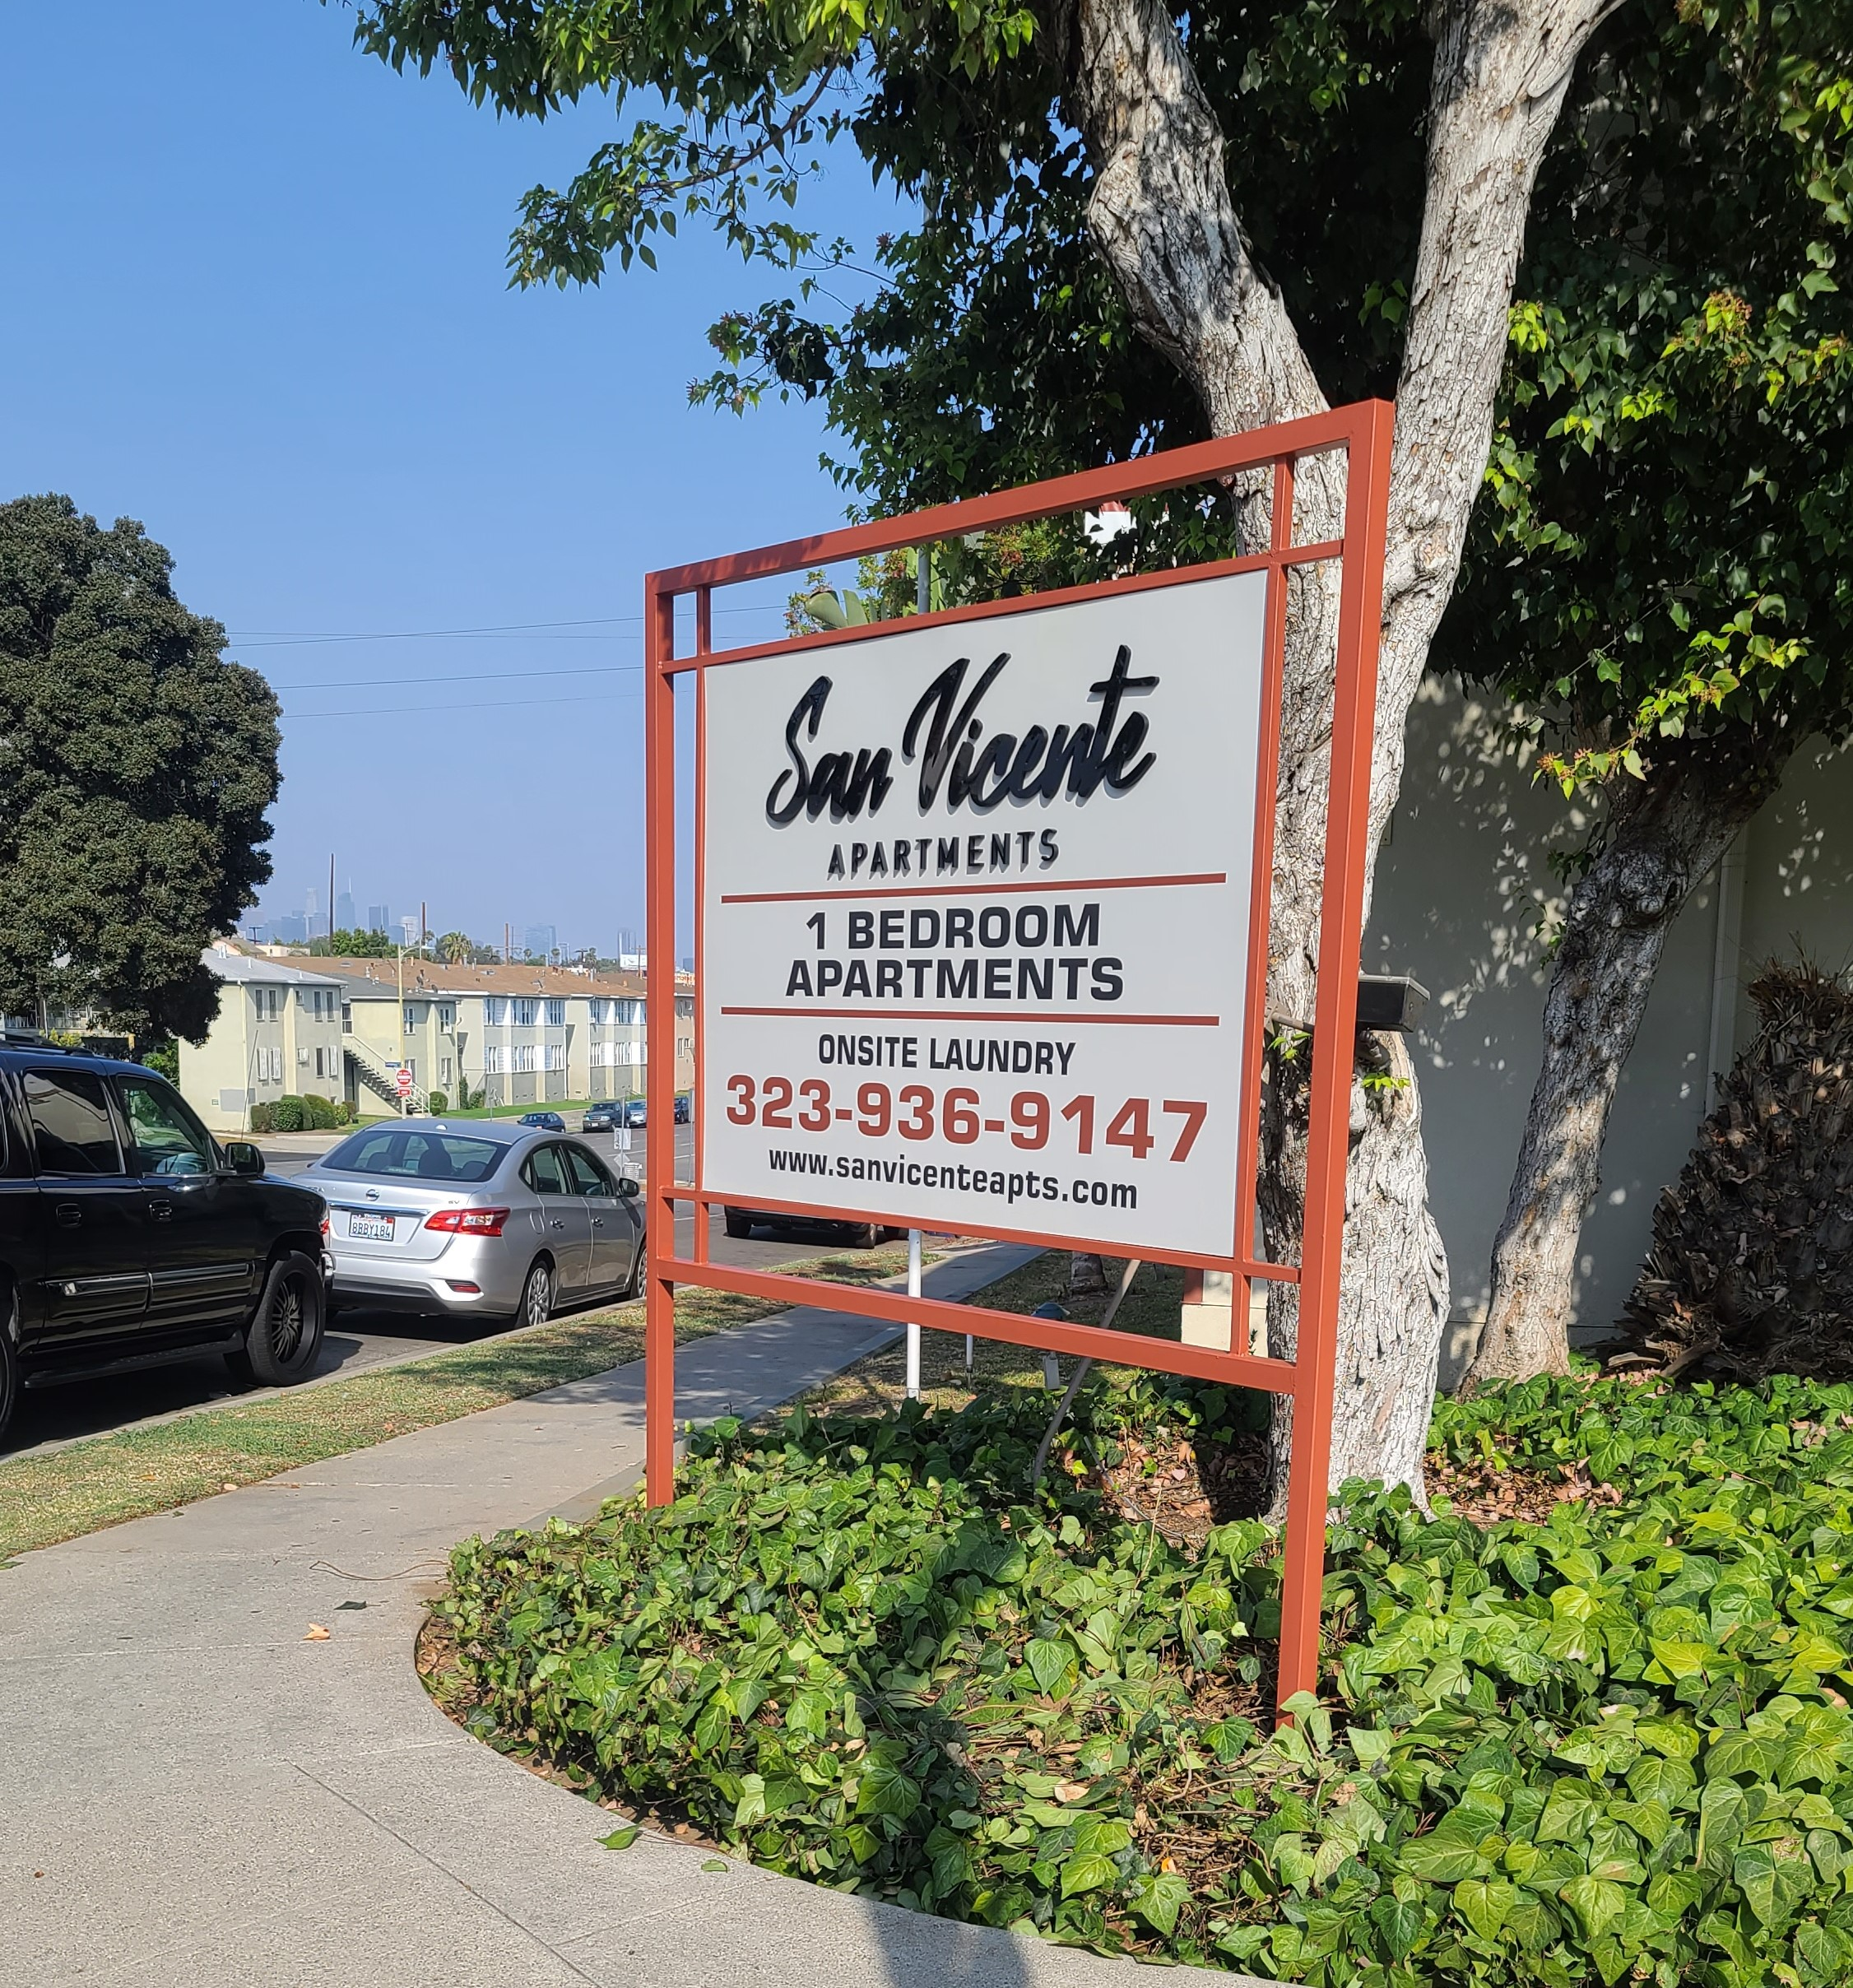 This is the post and panel apartment advertisement sign we fabricated and installed for our friends at Jones and Jones, it displays details about their San Vicente property so interested customers will know more about the available units.